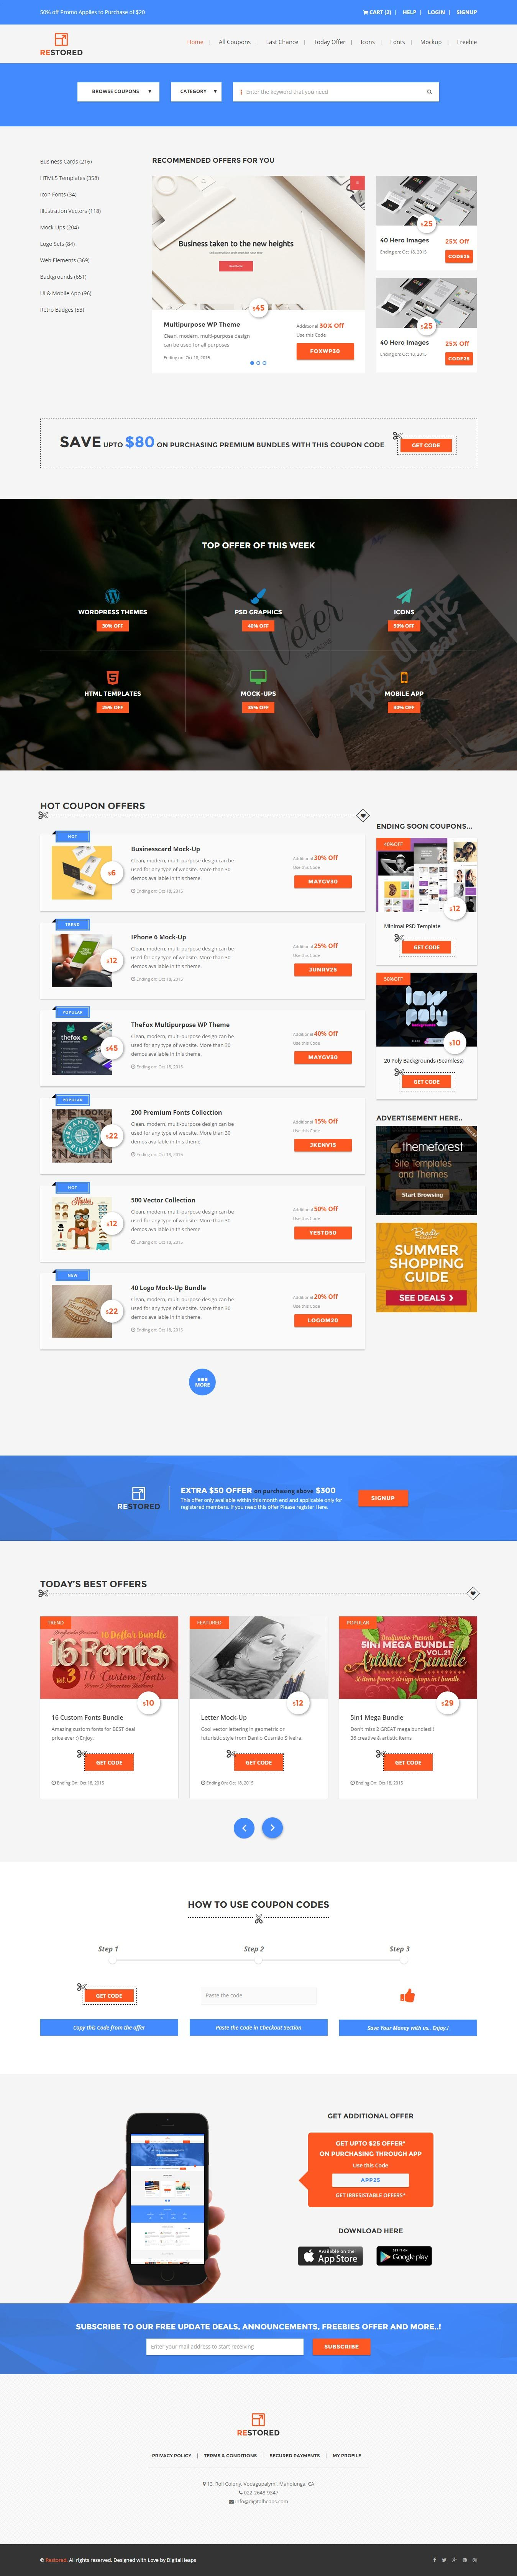 Restored - Market Place,Coupons and Deals HTML Template by DigiSamaritan